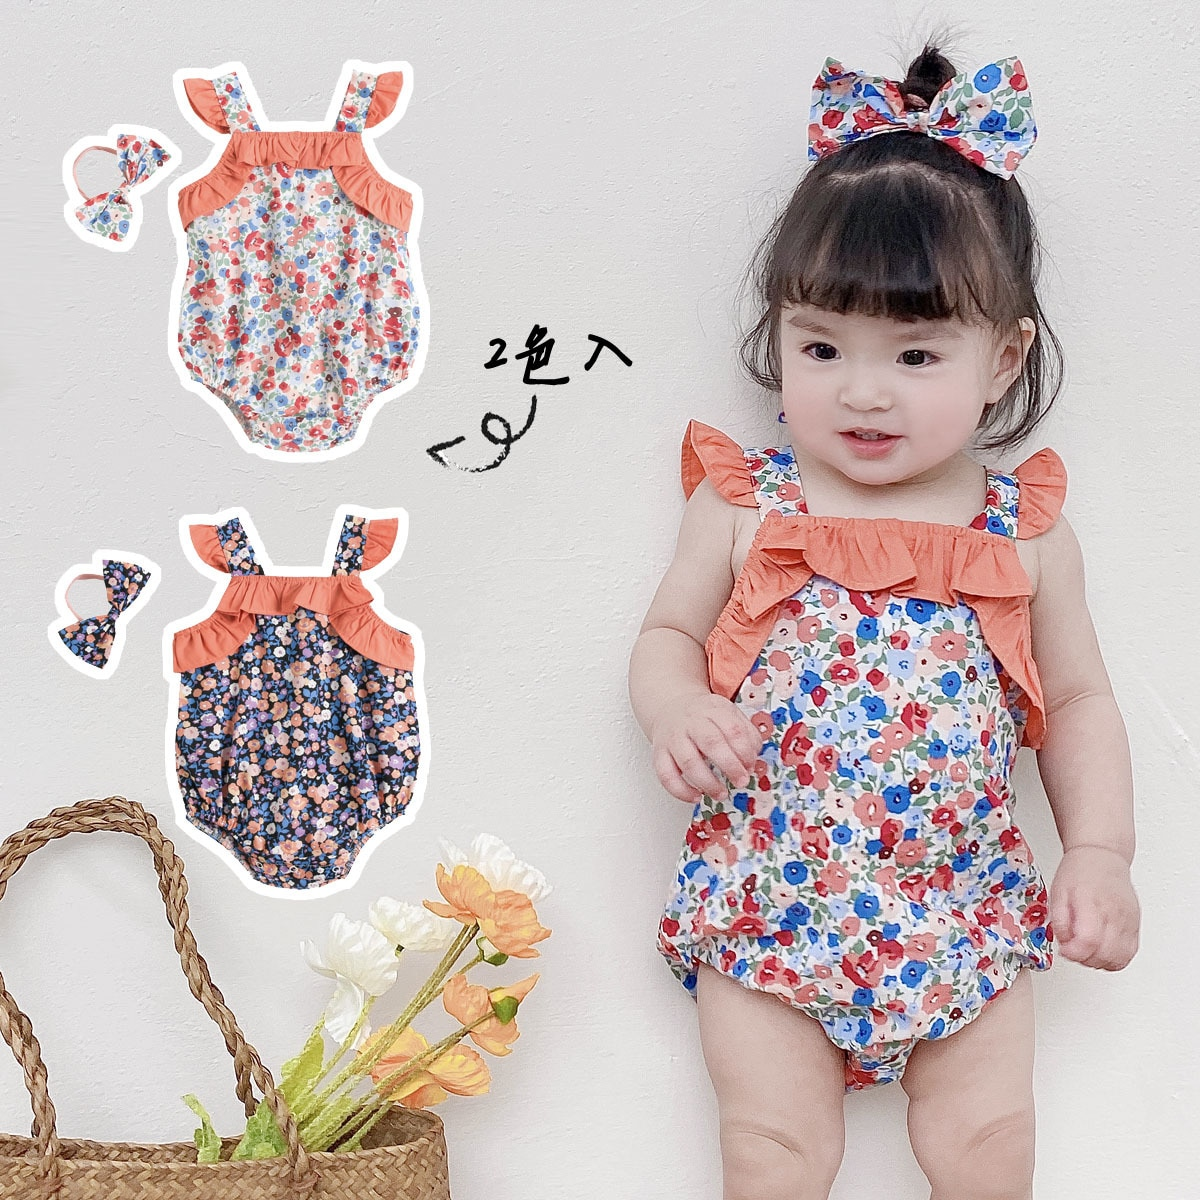 Yg brand baby one-piece clothes Korean summer girls' bag fart clothes Pure Cotton Floral creeping cl